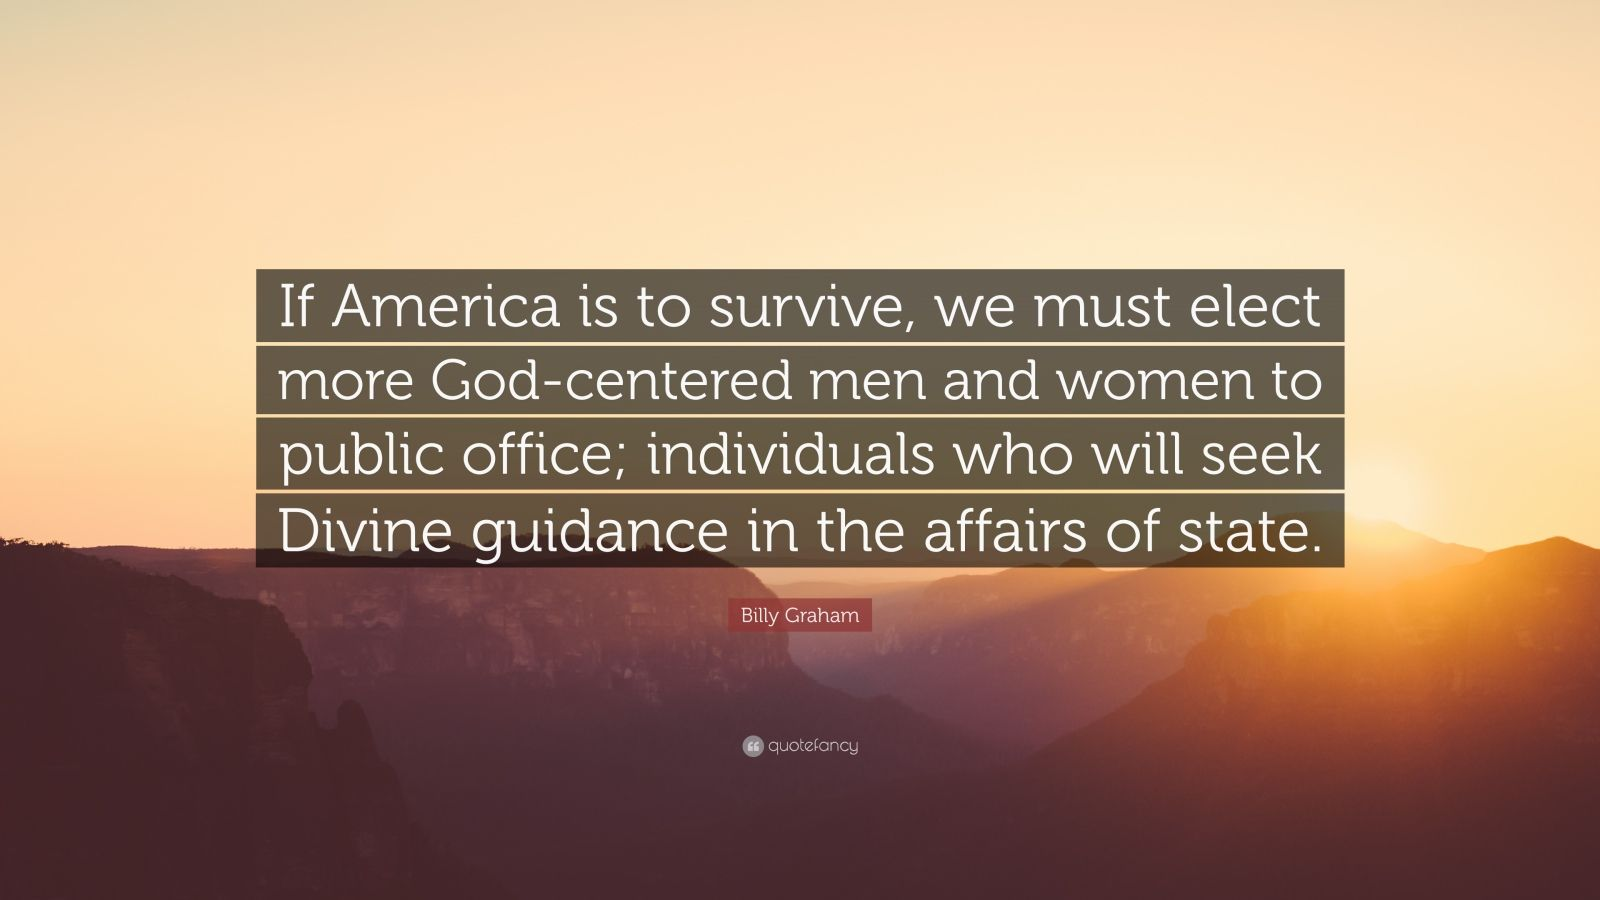 """Billy Graham Quote: """"If America is to survive, we must elect more God-centered men and women to public office; individuals who will seek Divine guidance in the affairs of state."""""""